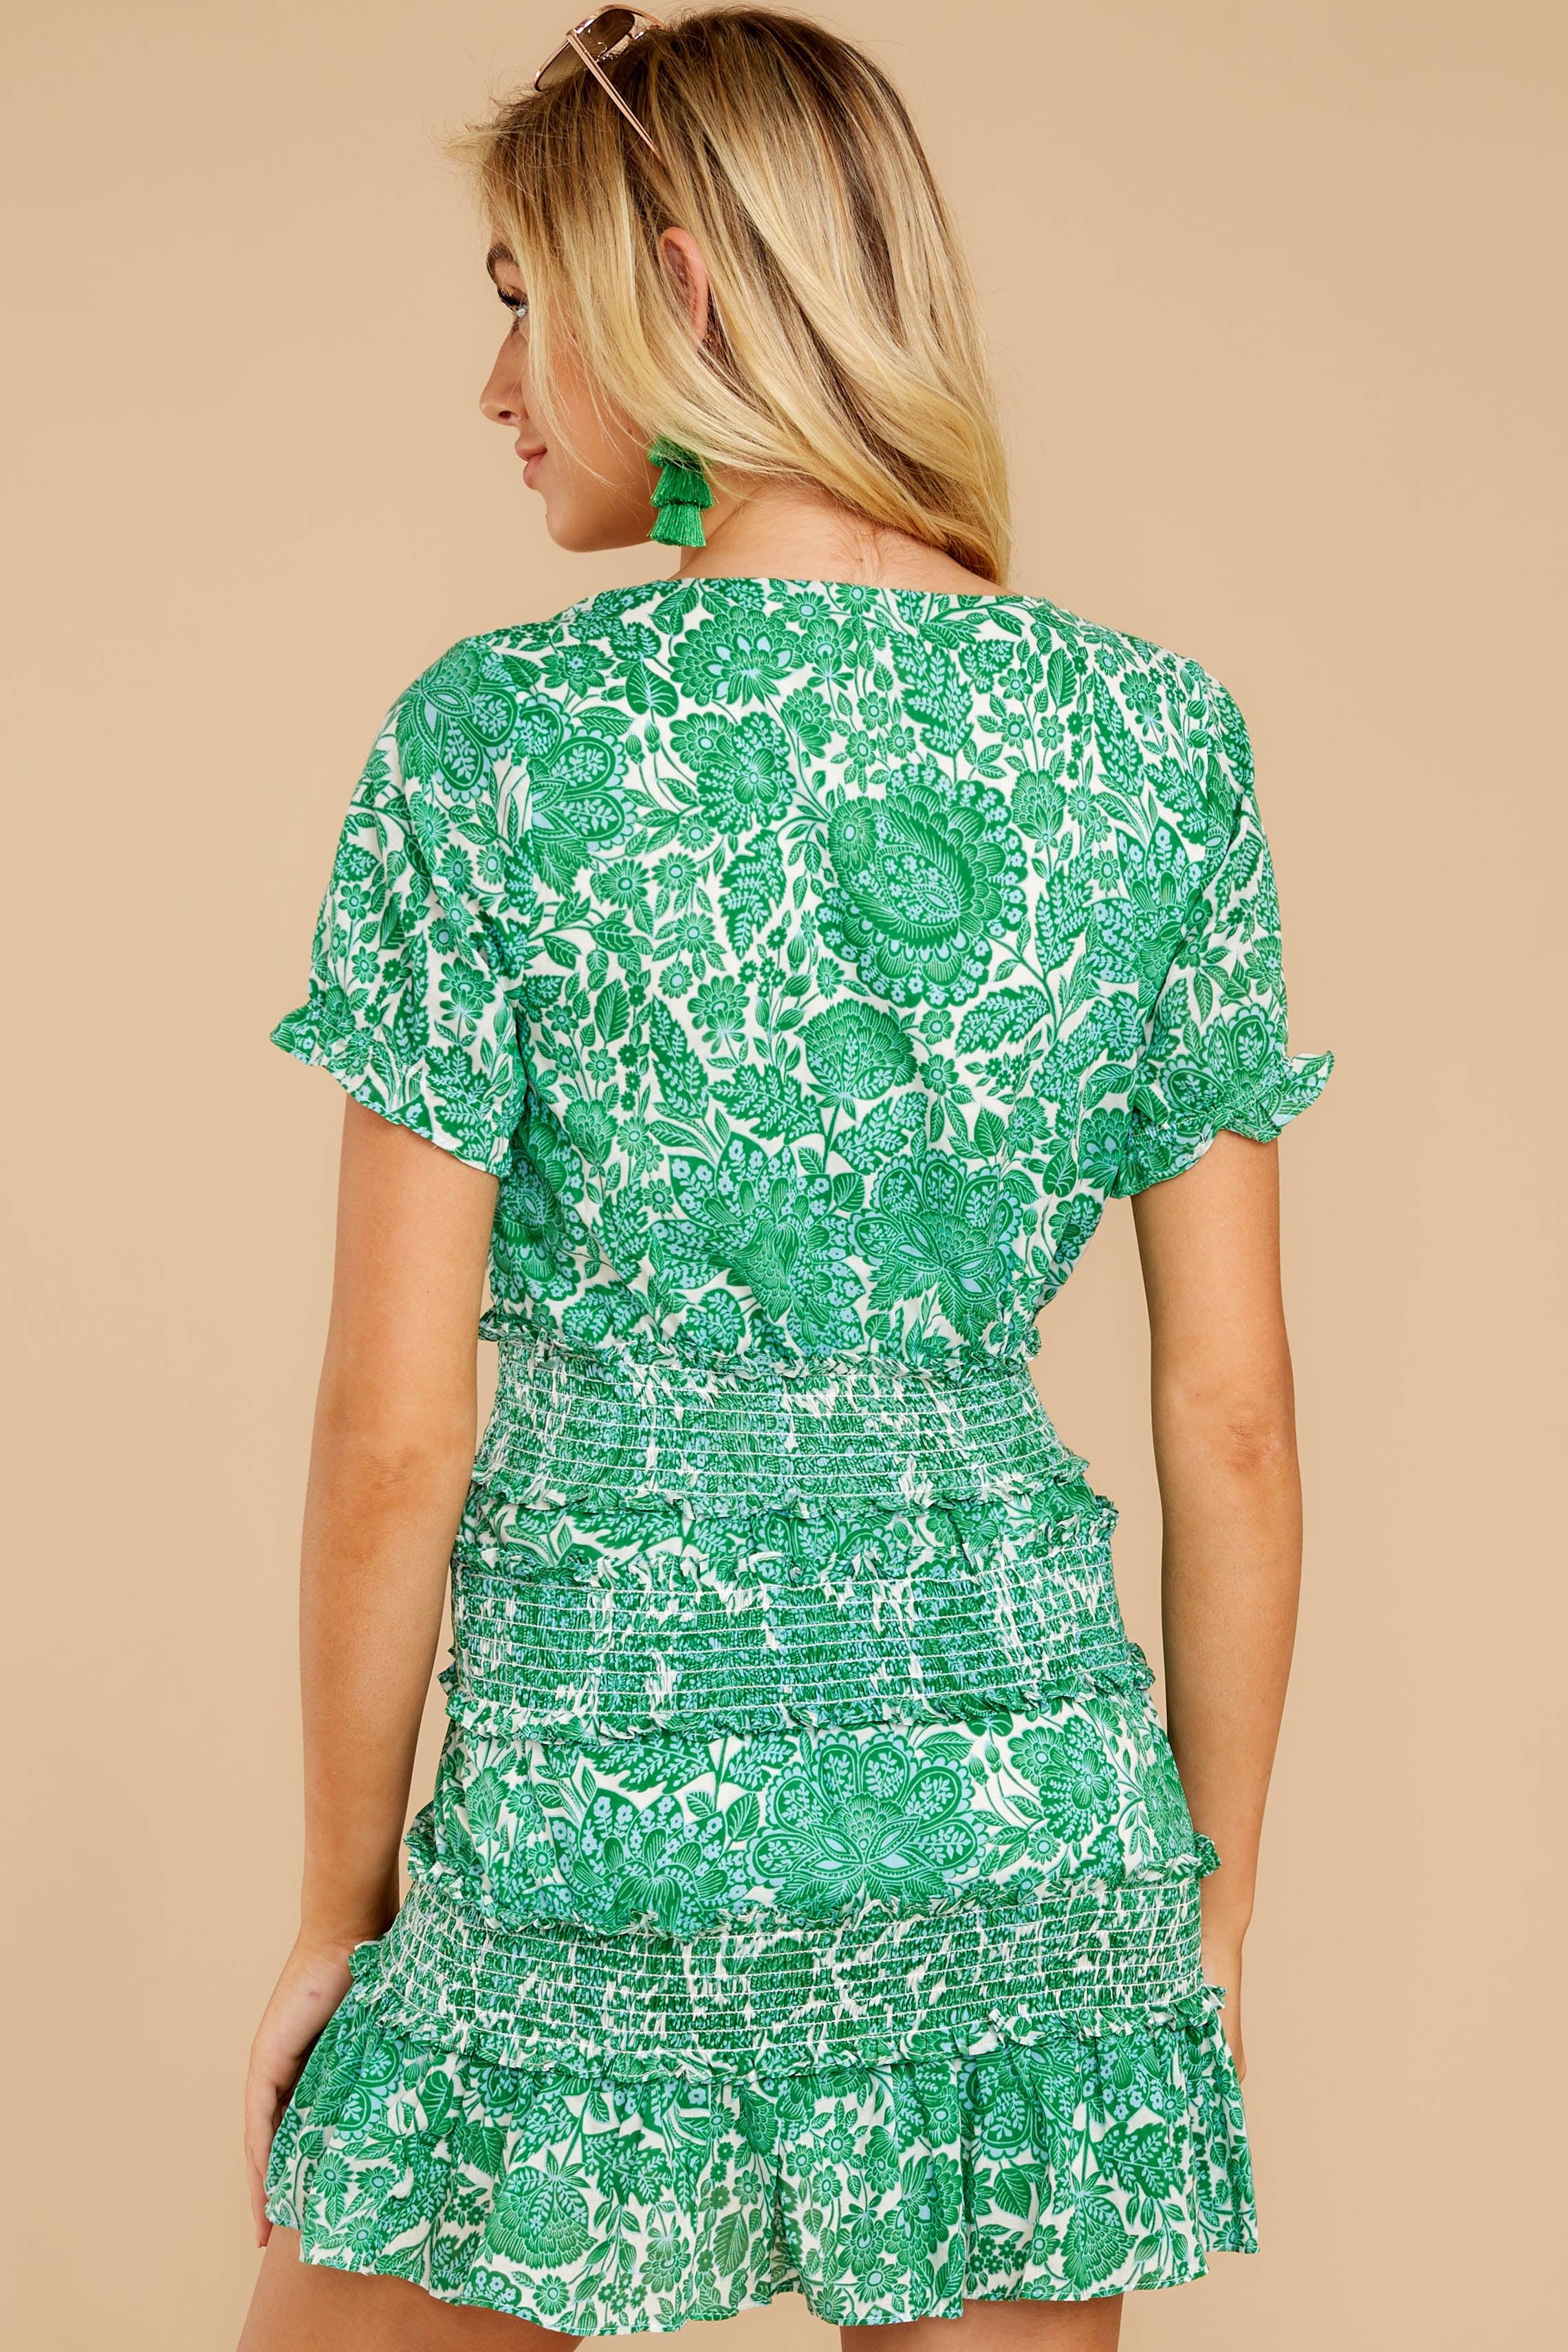 7 Got A Crush Kelly Green Floral Print Dress at reddress.com